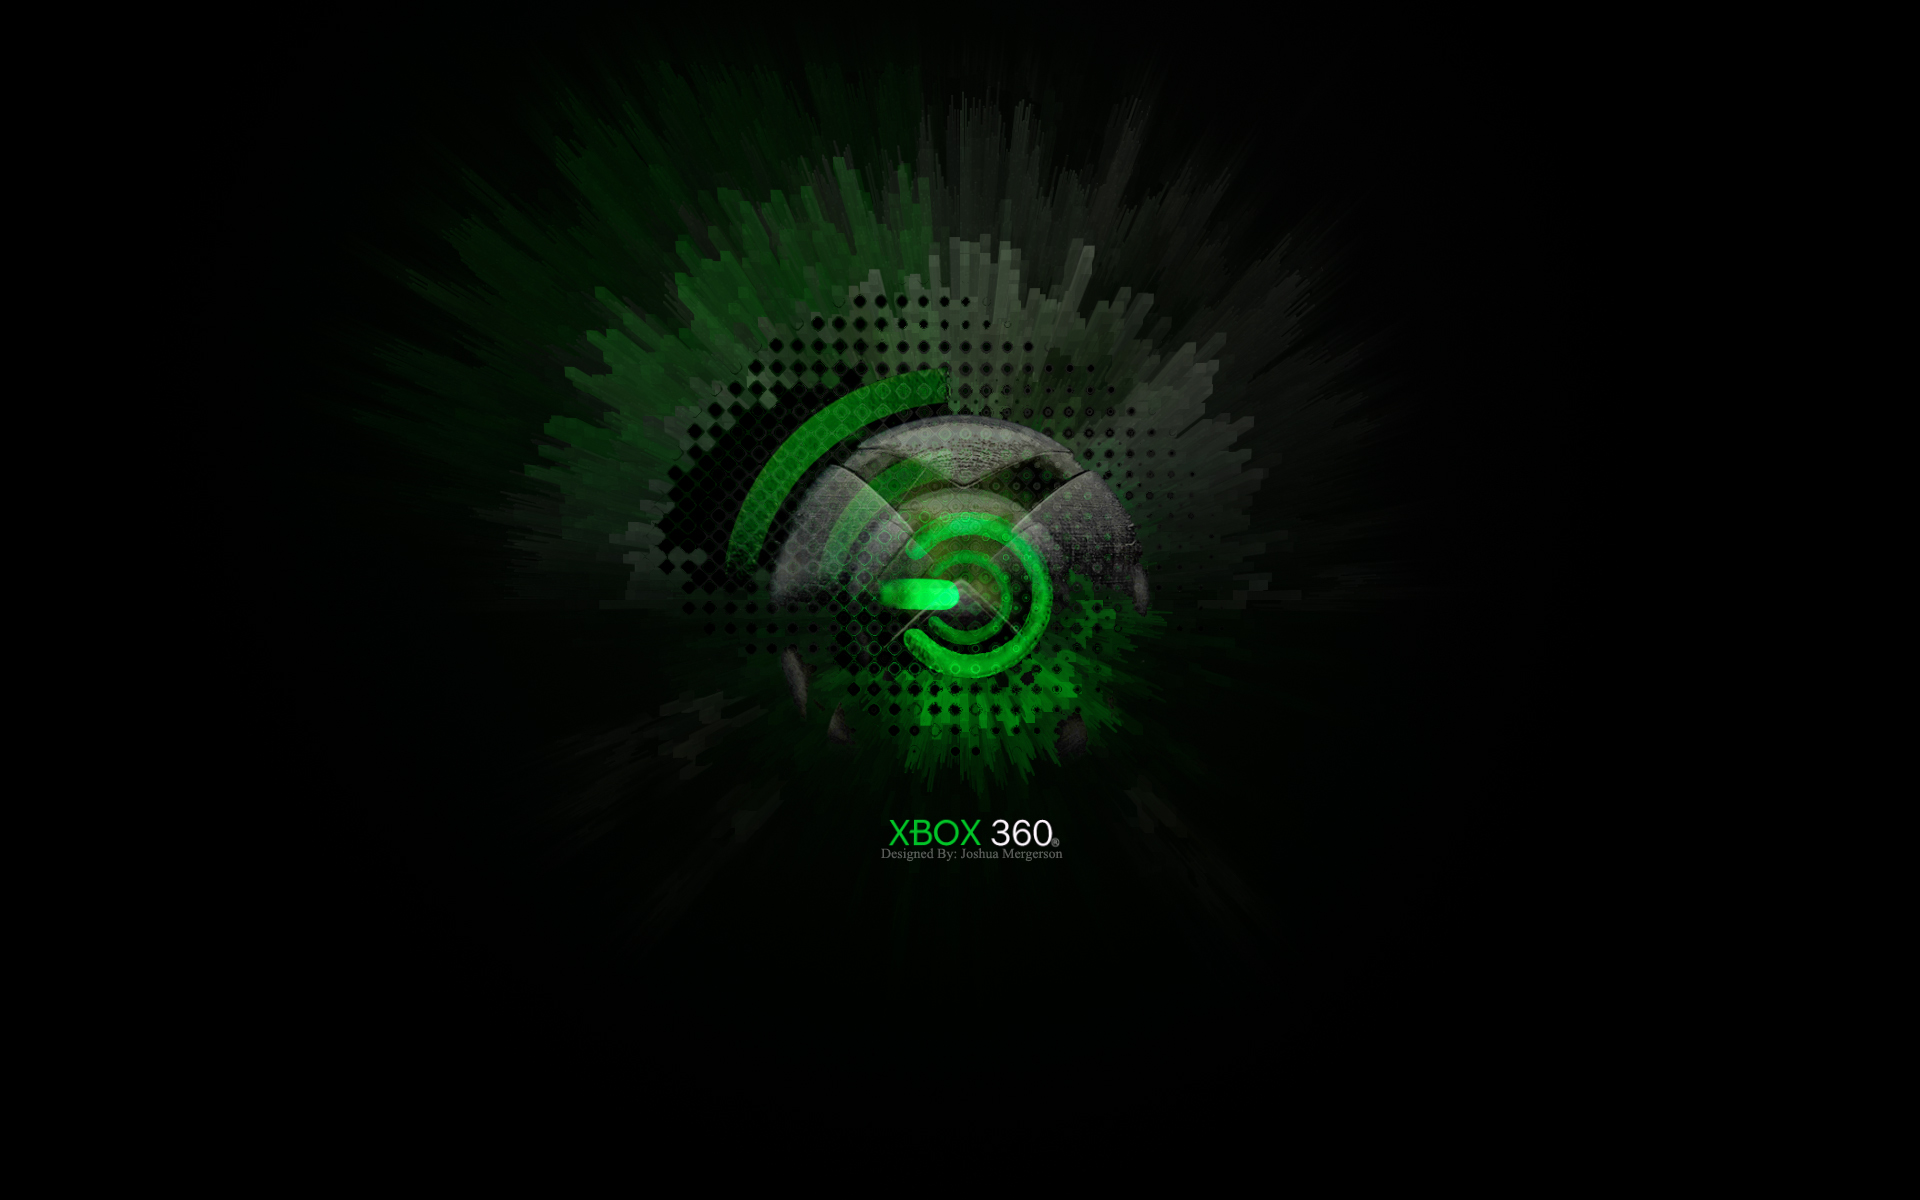 <b>Xbox 360 Wallpaper</b> - WallpaperSafari